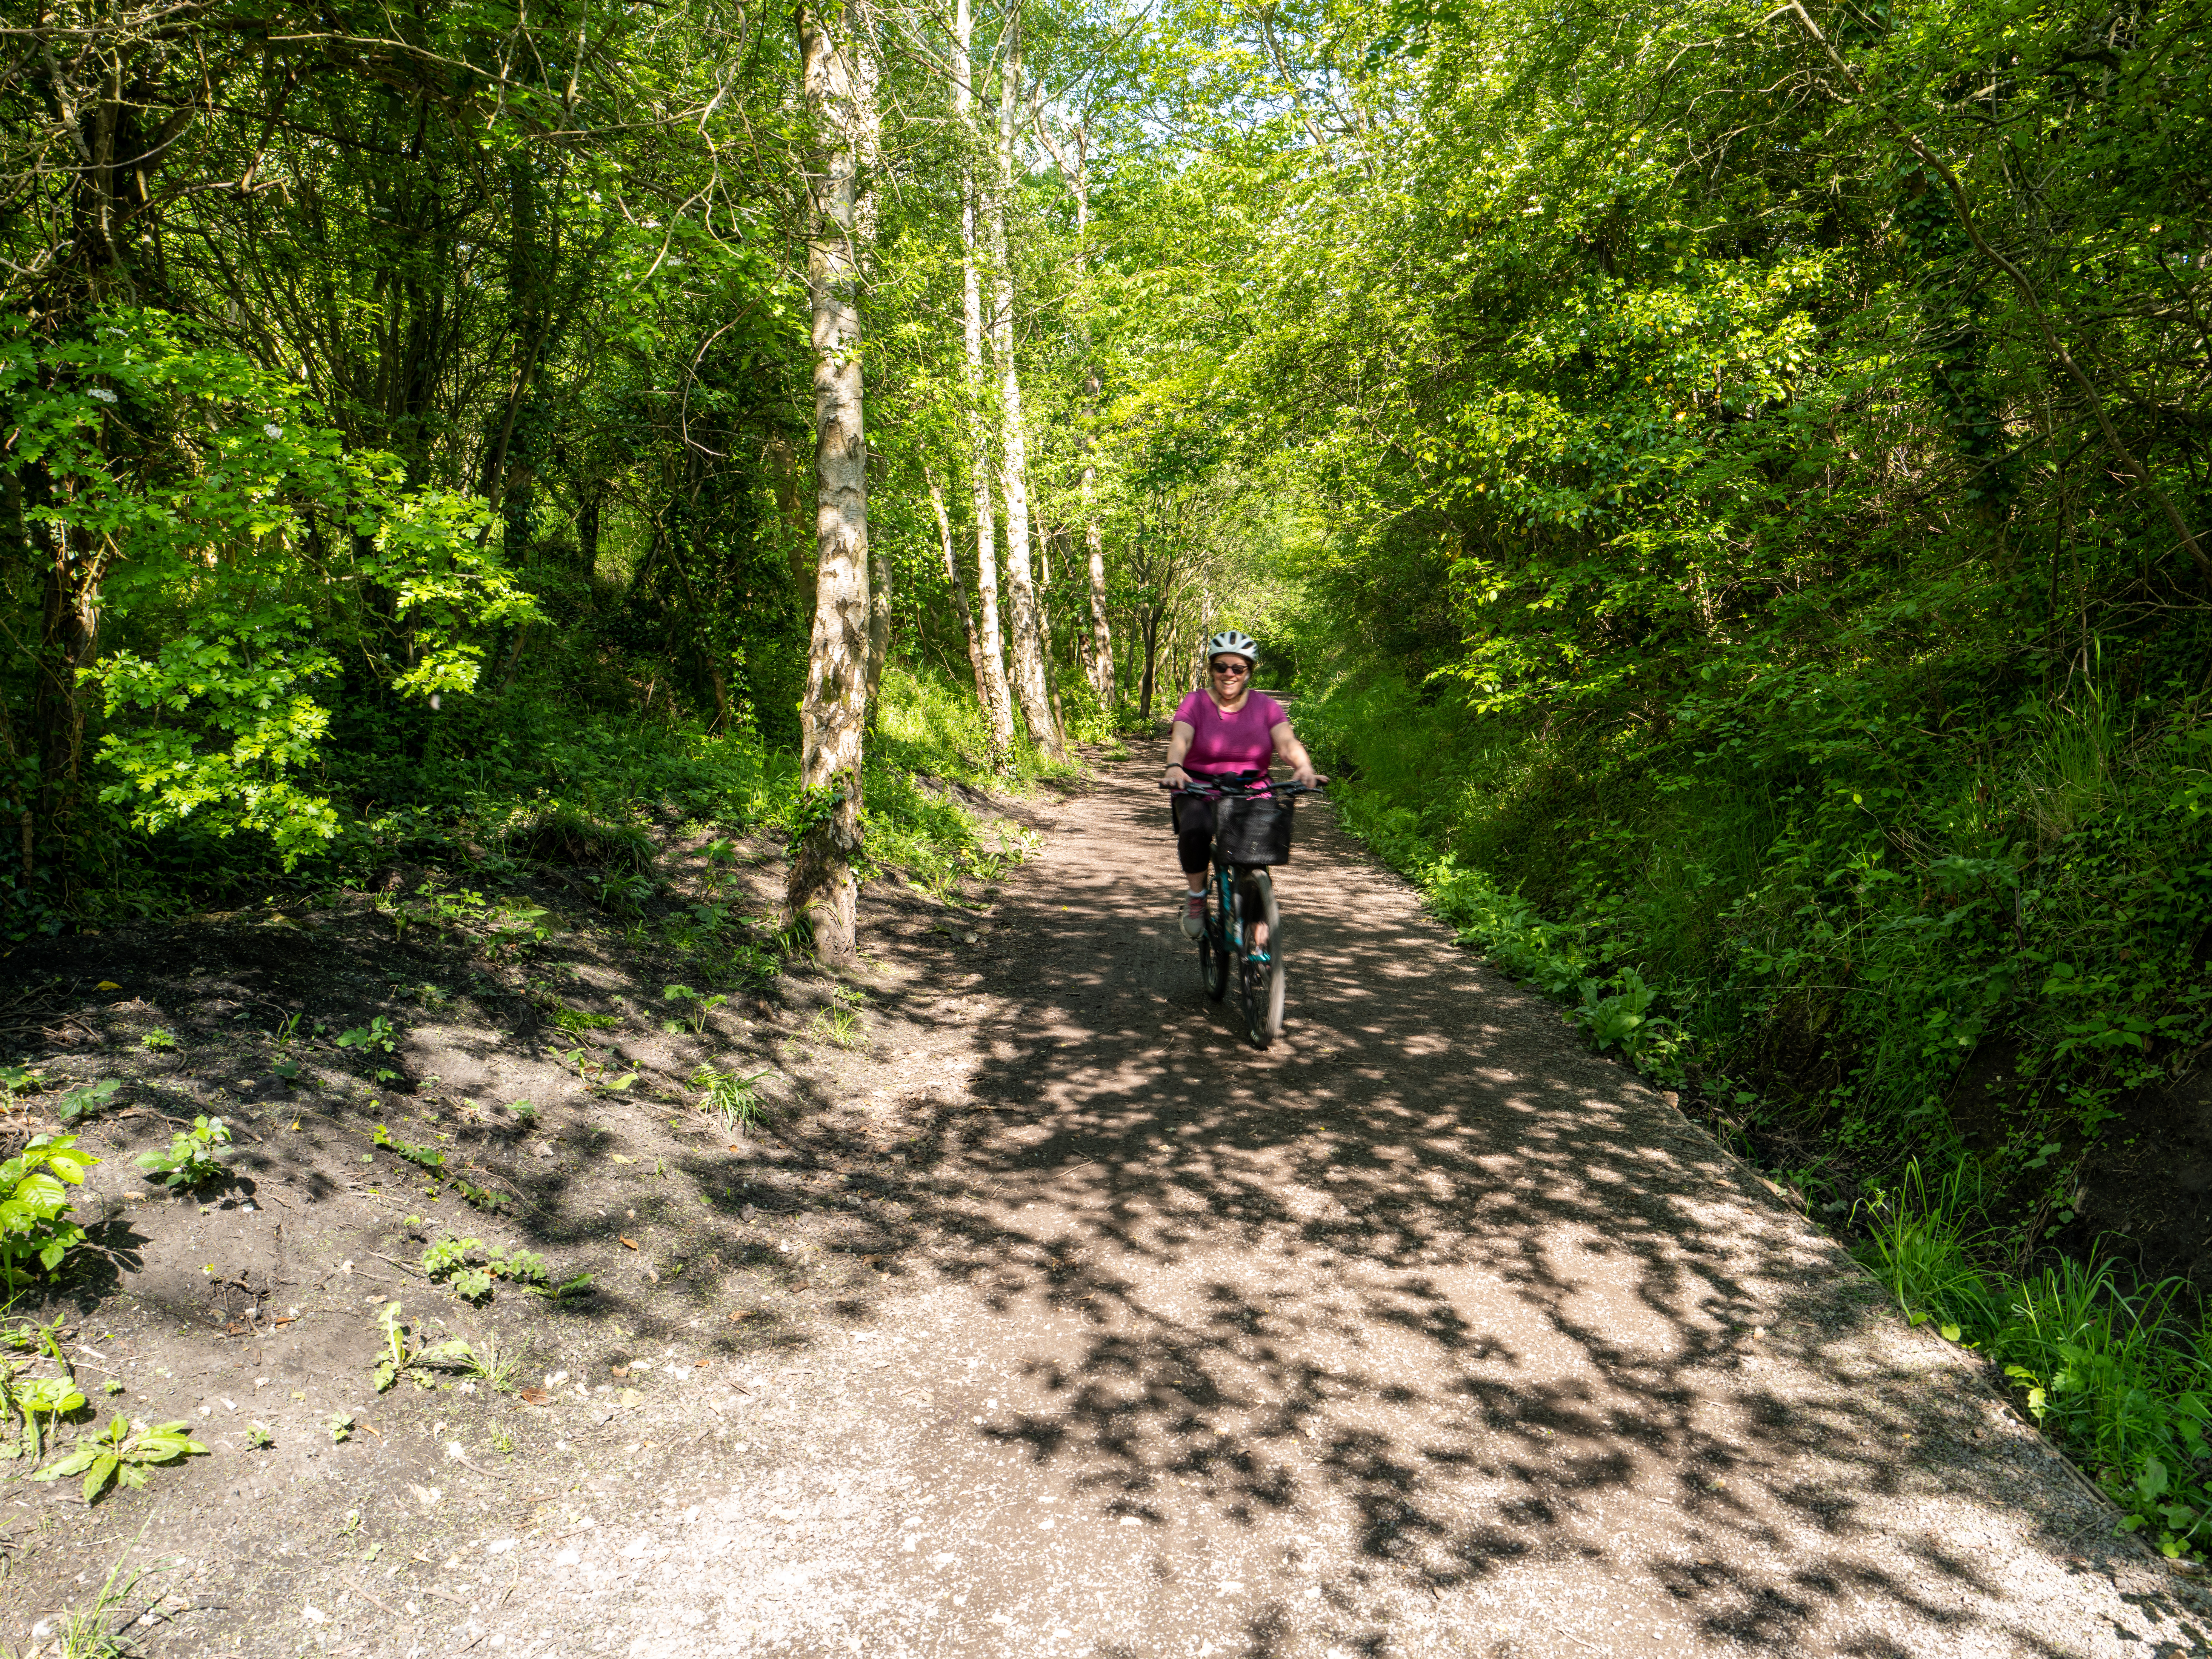 Cycling on the cinder track